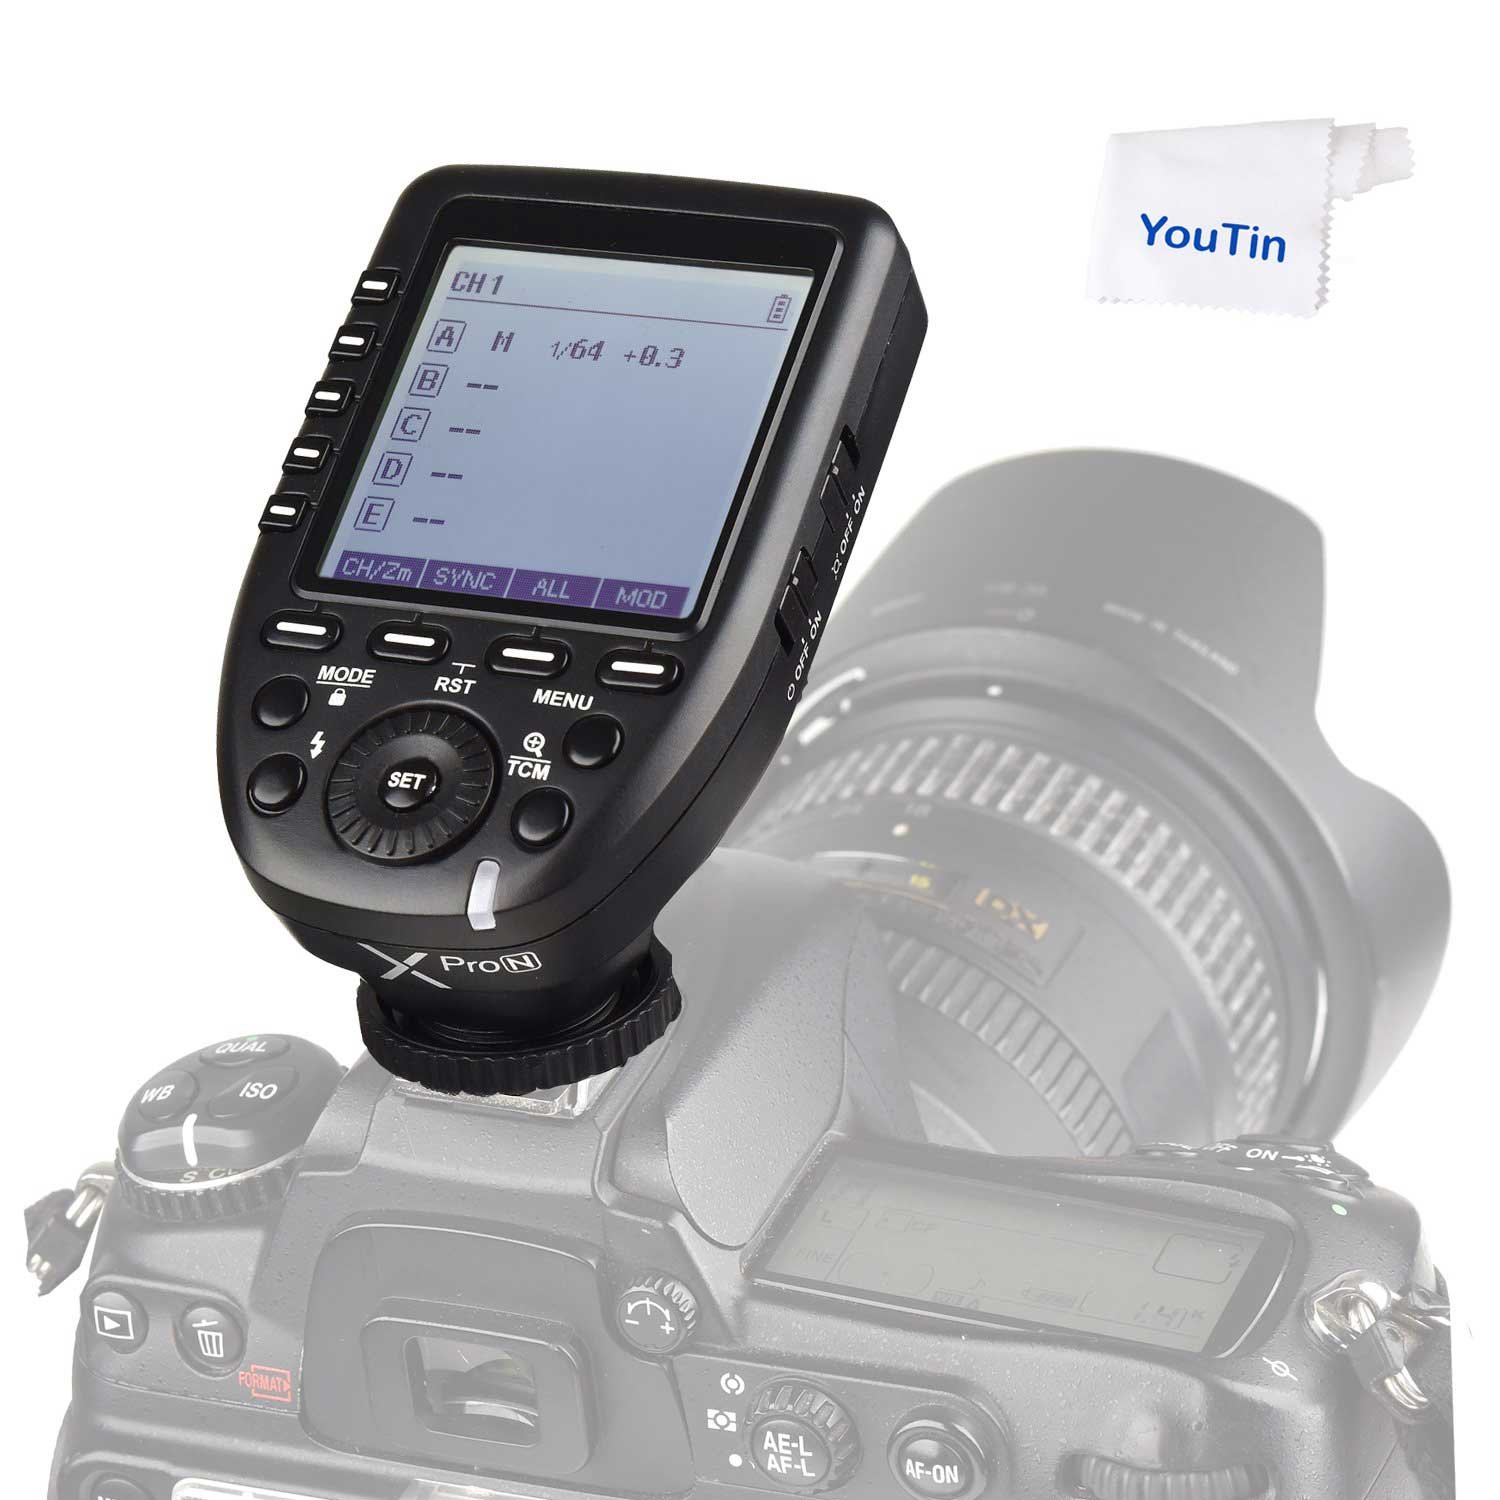 Godox Xpro-N TTL 2.4G 1/8000s HSS Wireless Flash Trigger i-TTL Transmittter for Nikon Cameras by Godox